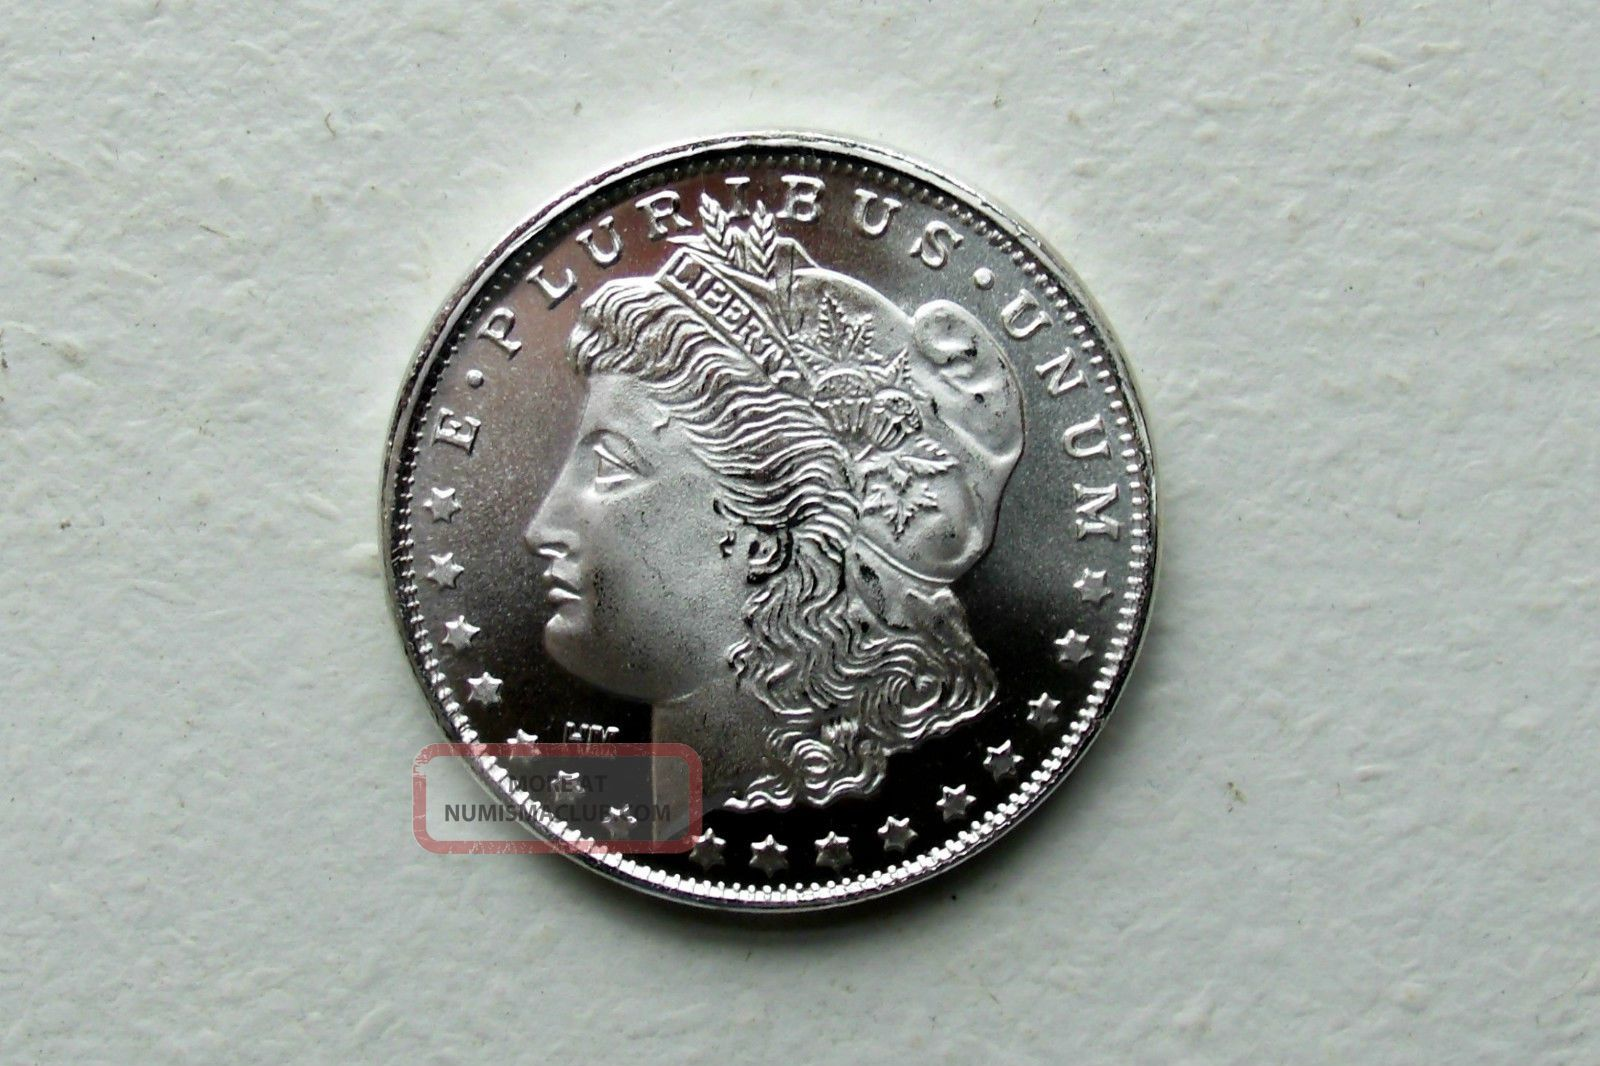 Morgan Dollar Design 1 Troy Oz 999 Fine Silver Round